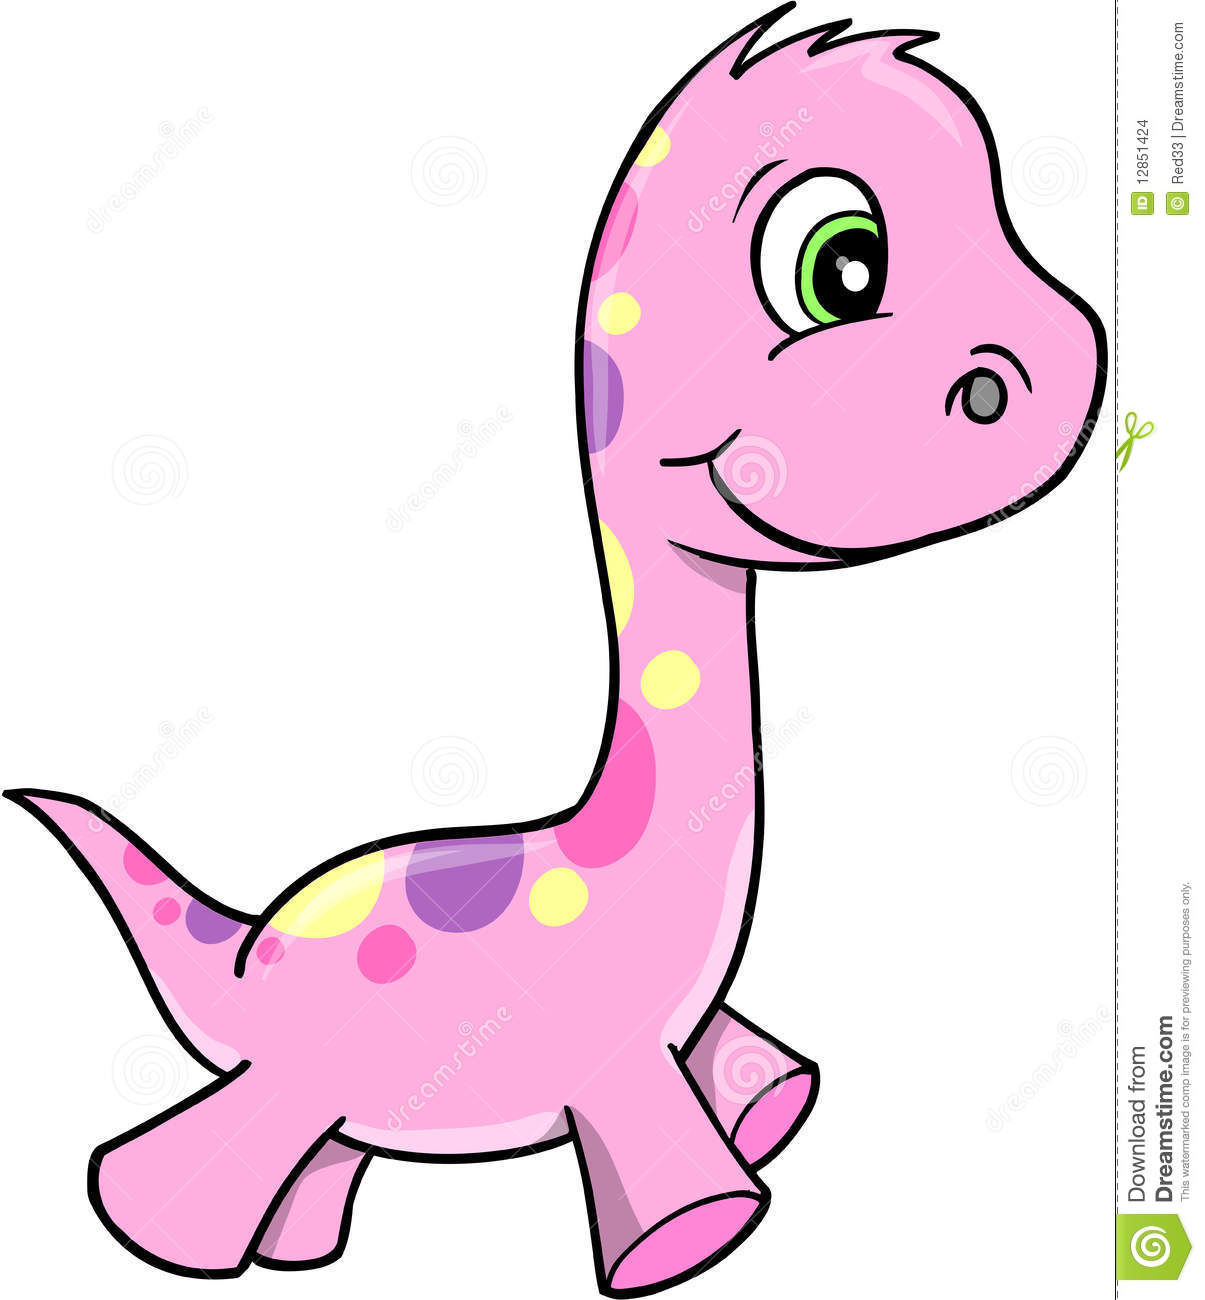 Cute Pink Vector Dinosaur Stock Images - Image: 12851424